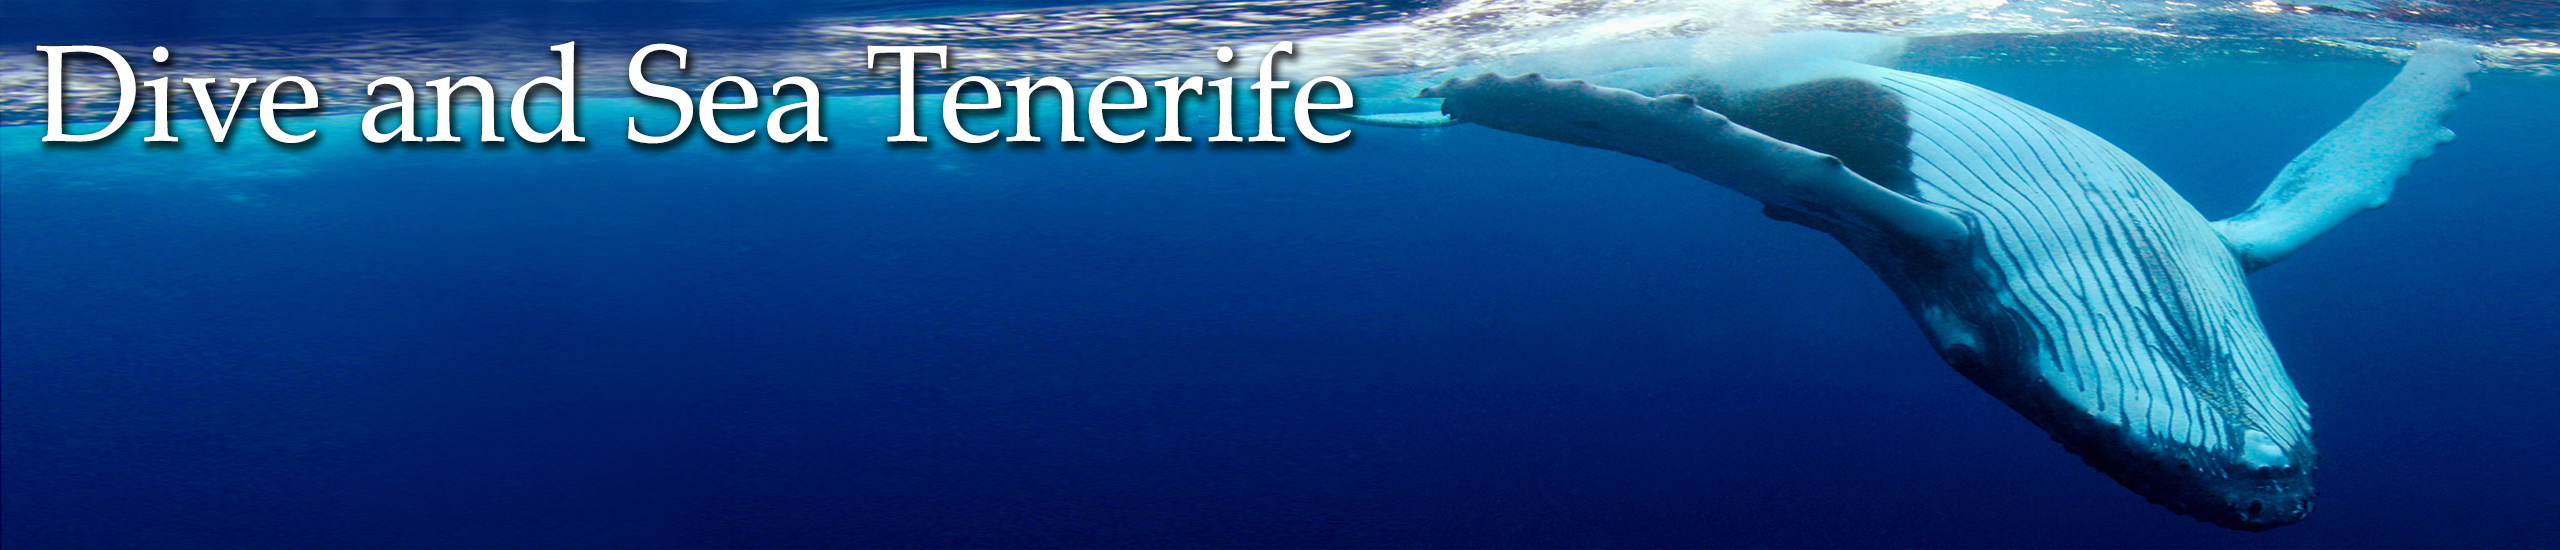 Diving in Tenerife-Dive-and-sea-tenerife-banner-humpback-whale